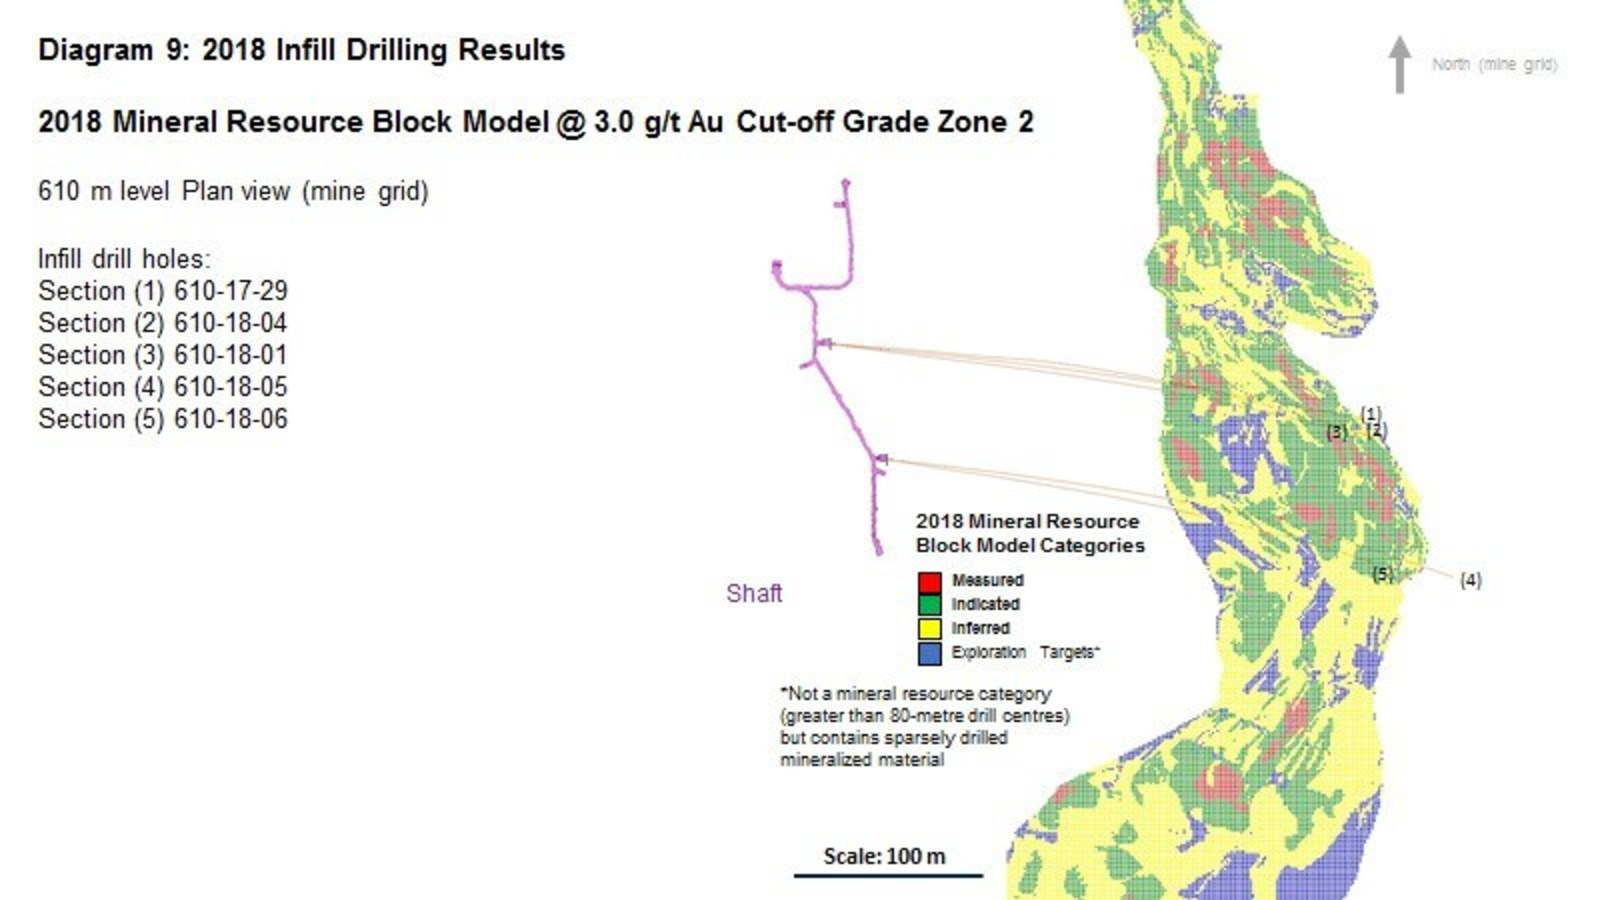 Diagram 9 : 2018 Infill Drilling Results - 2018 Mineral Resource Block Model @ 3.0 g/t Au Cut-off Grade Zone 2